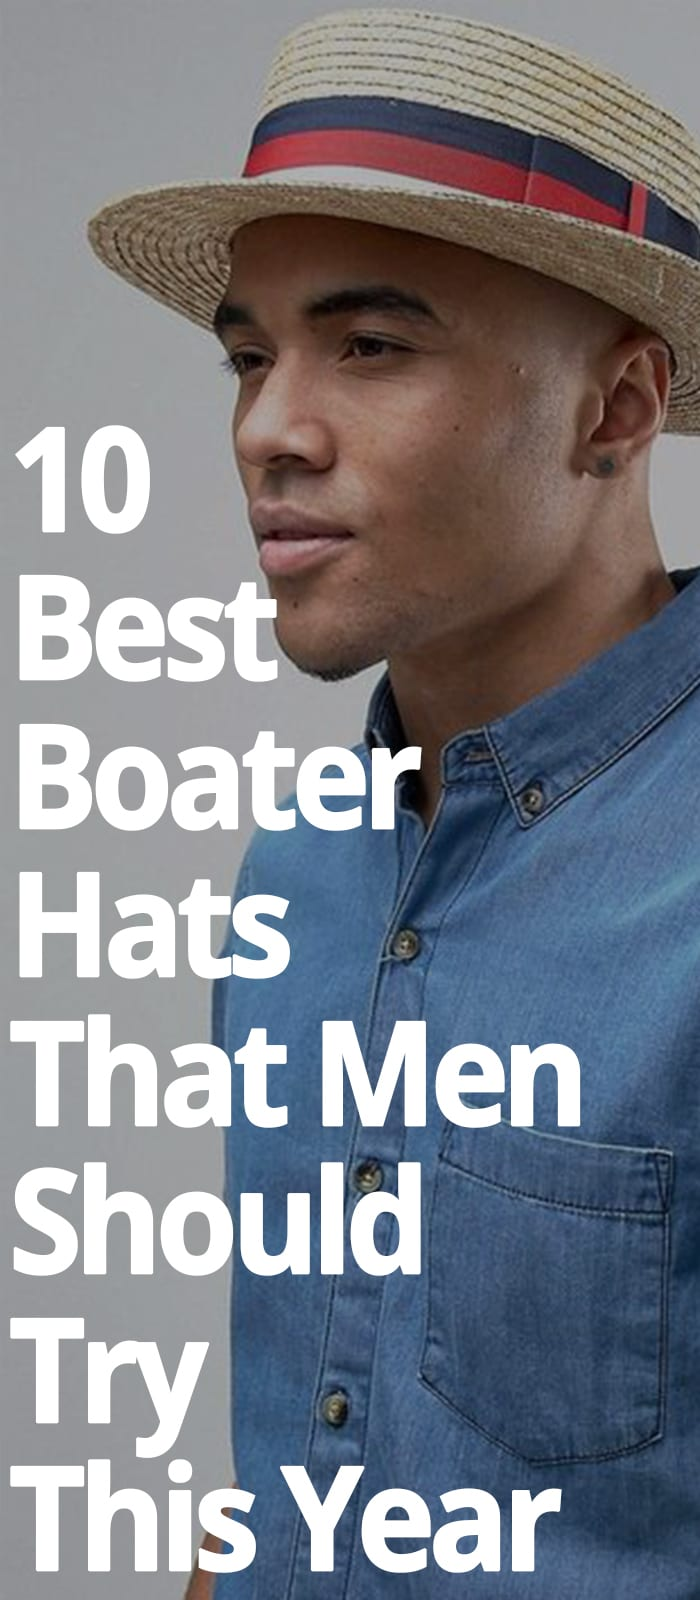 10 BEST BOATER HATS